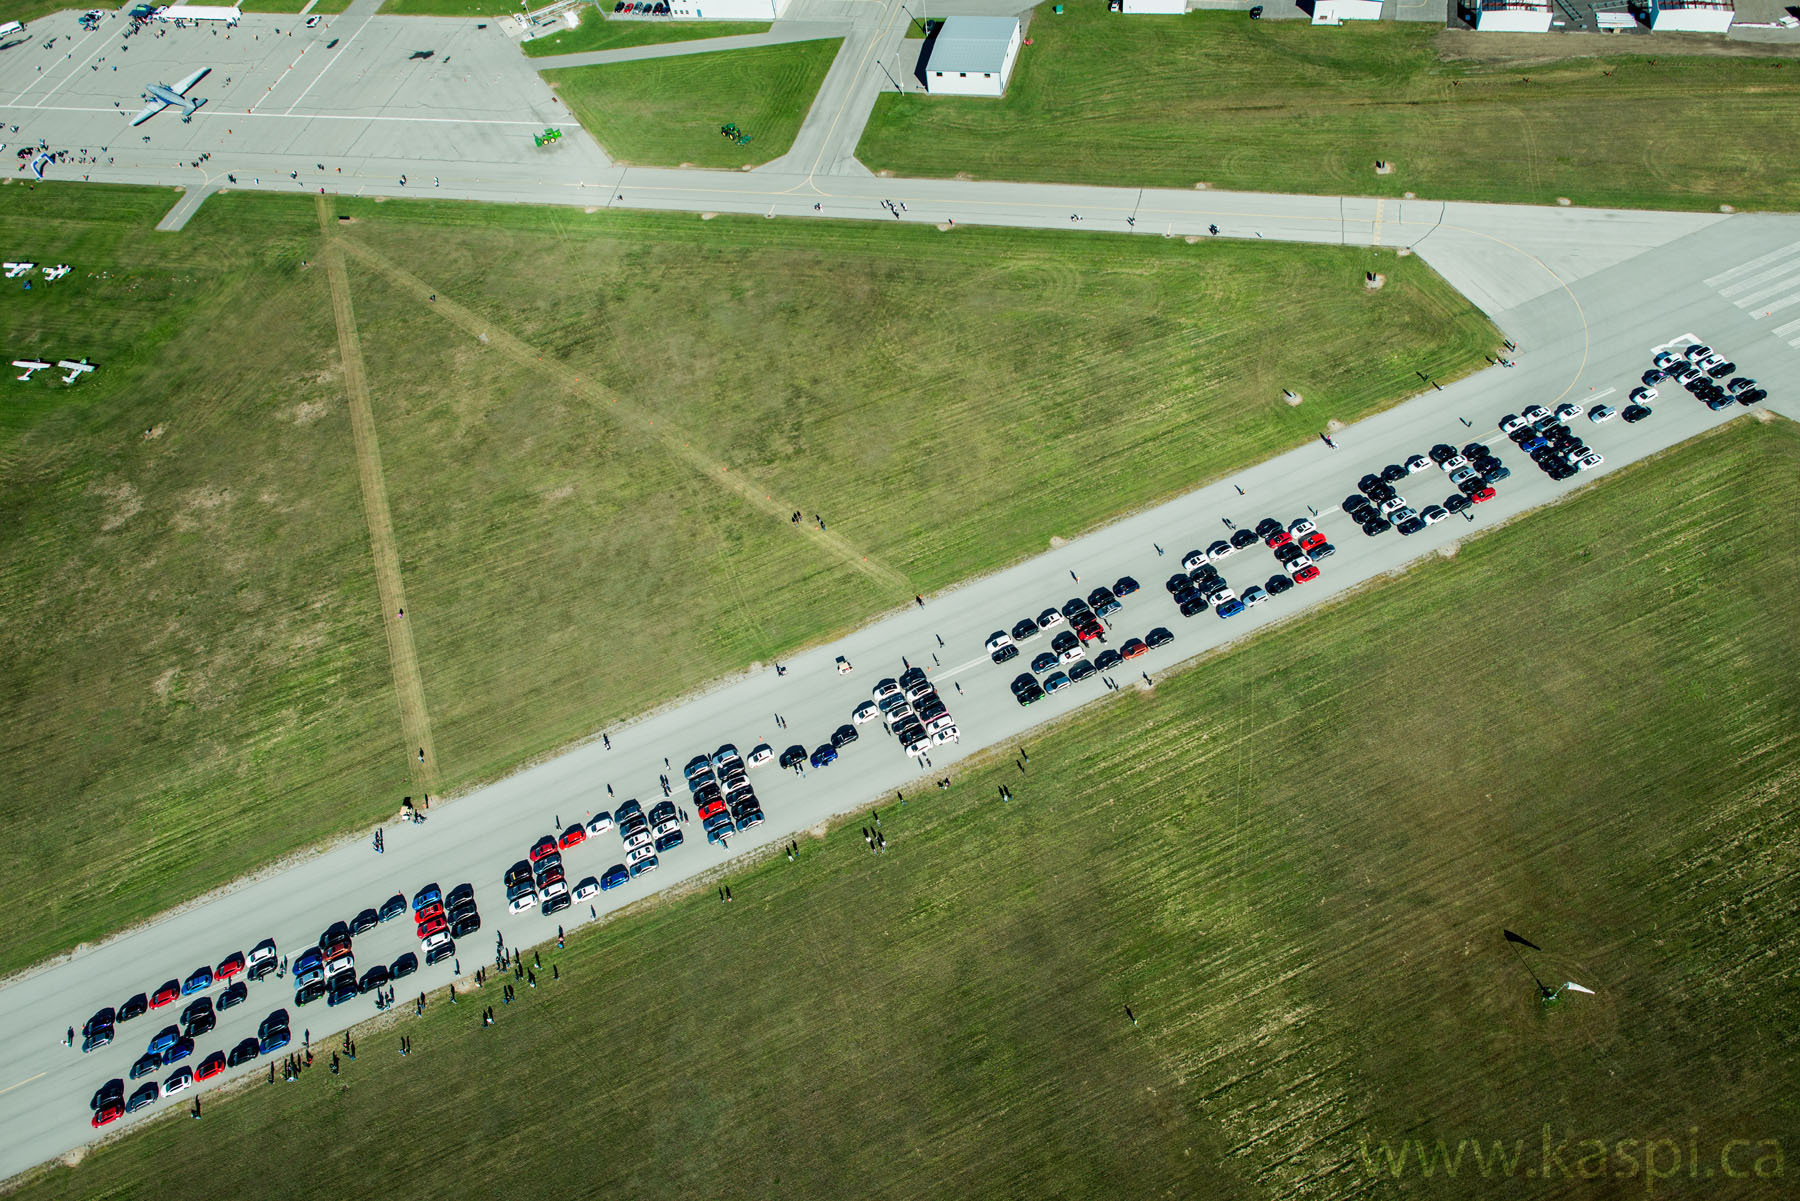 300 Mazda 3s To Meet On Airport Strip For Epic Pic For